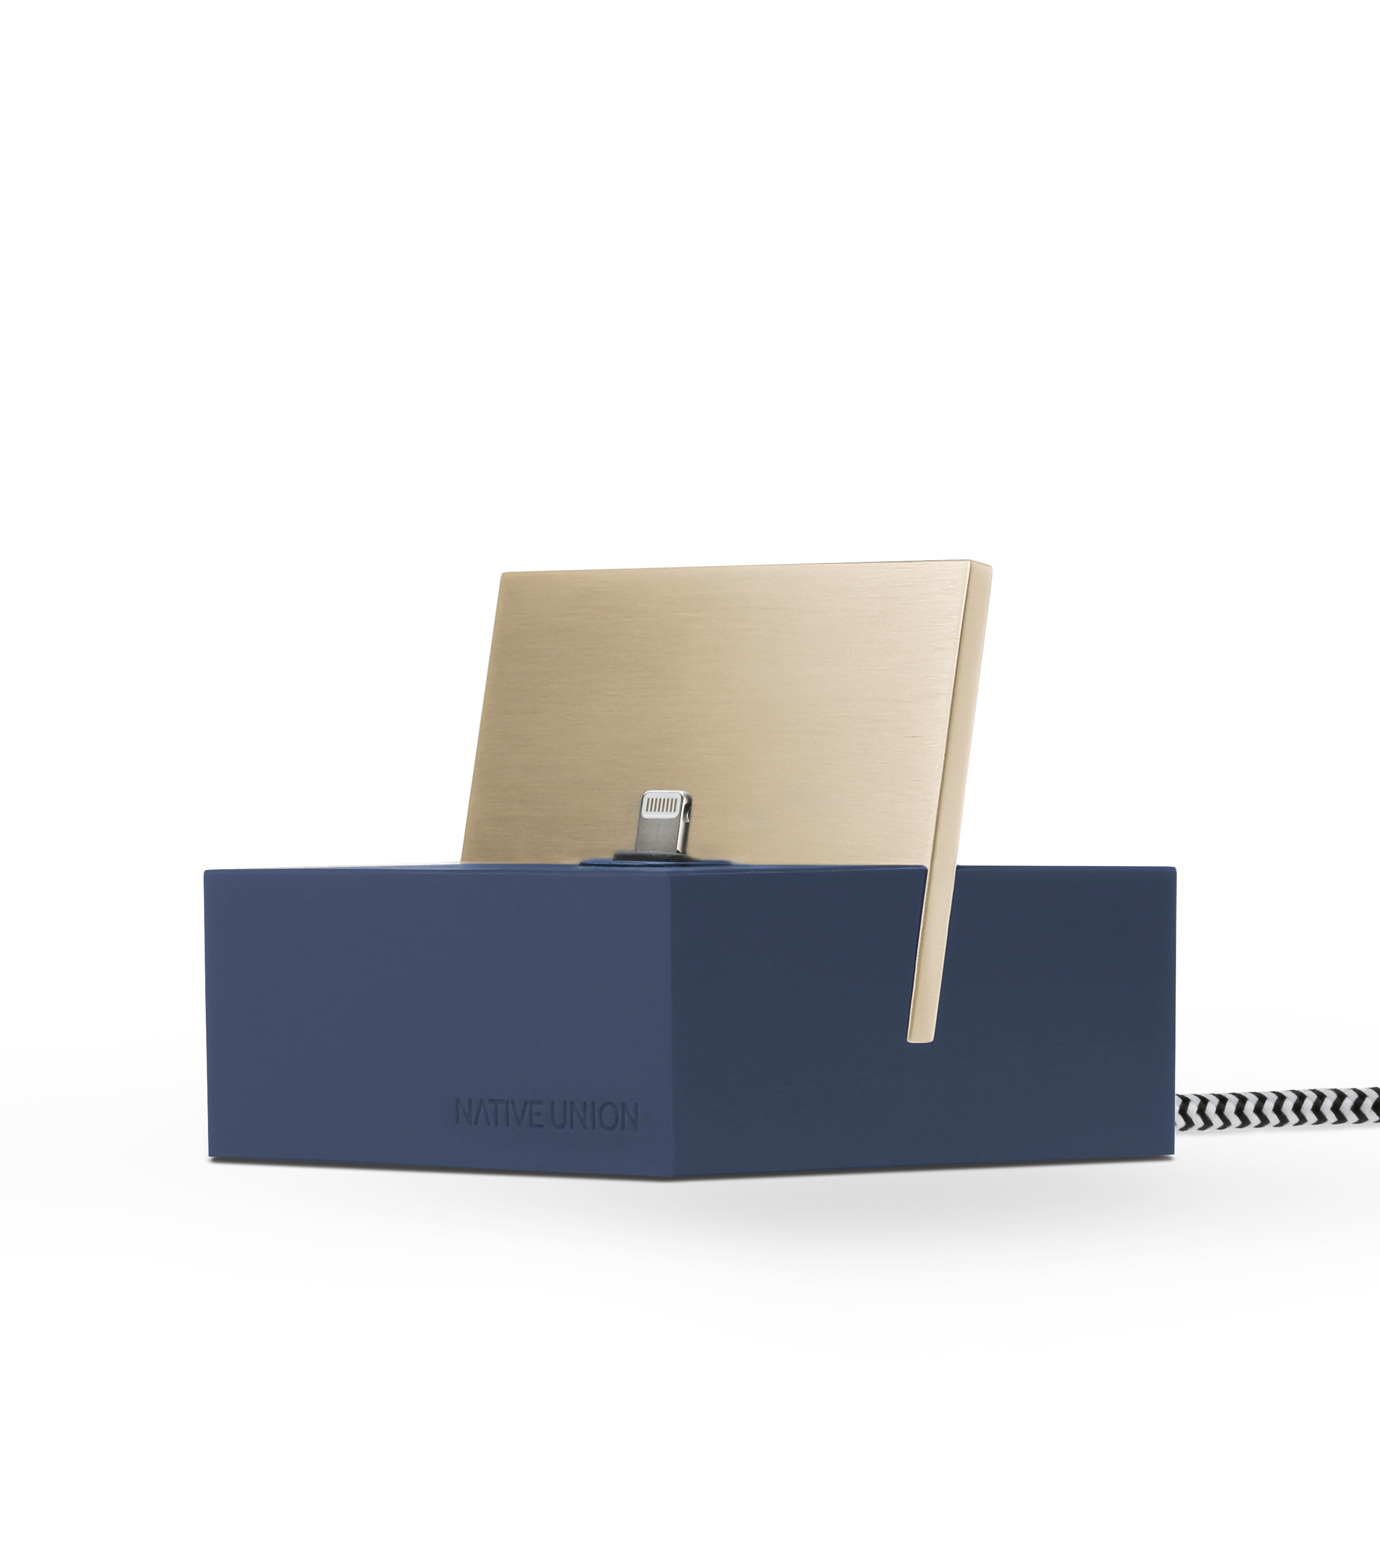 Native Union(ネイティブ ユニオン)のDOCK FOR IPHONE WITH 1.2M CABLE-MARI-NAVY(ガジェット/gadgets)-NU-DOCK-IPC4-93 拡大詳細画像2